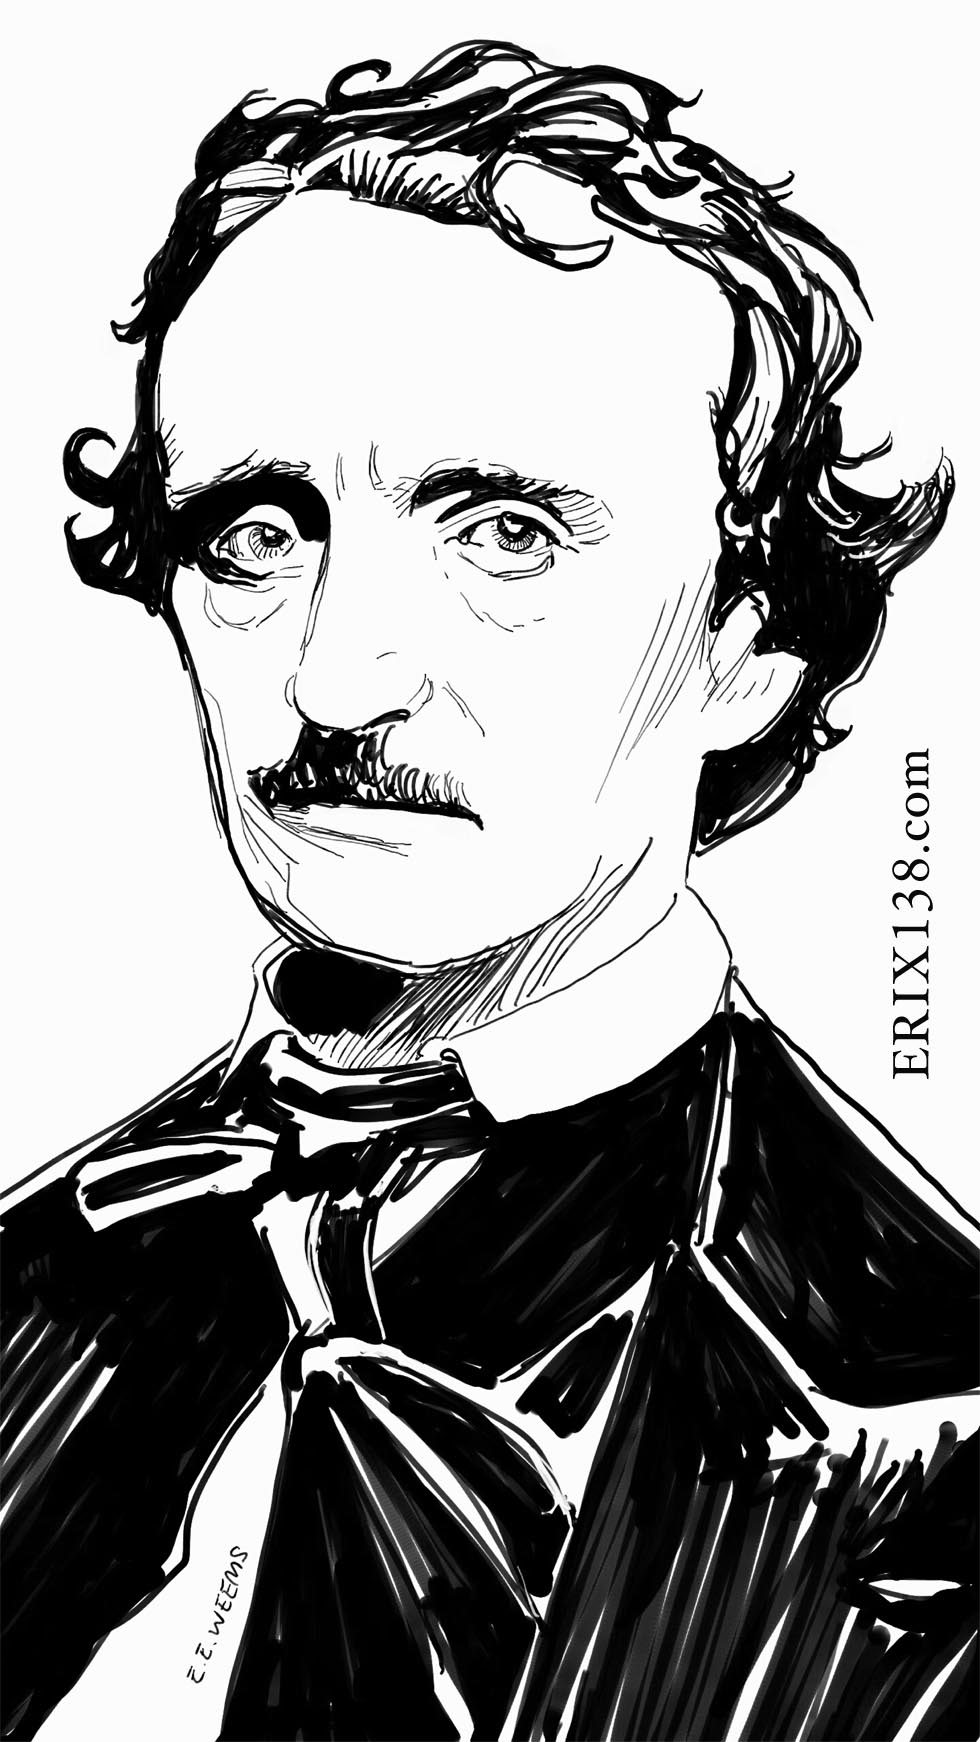 Edgar Allan Poe by Weems